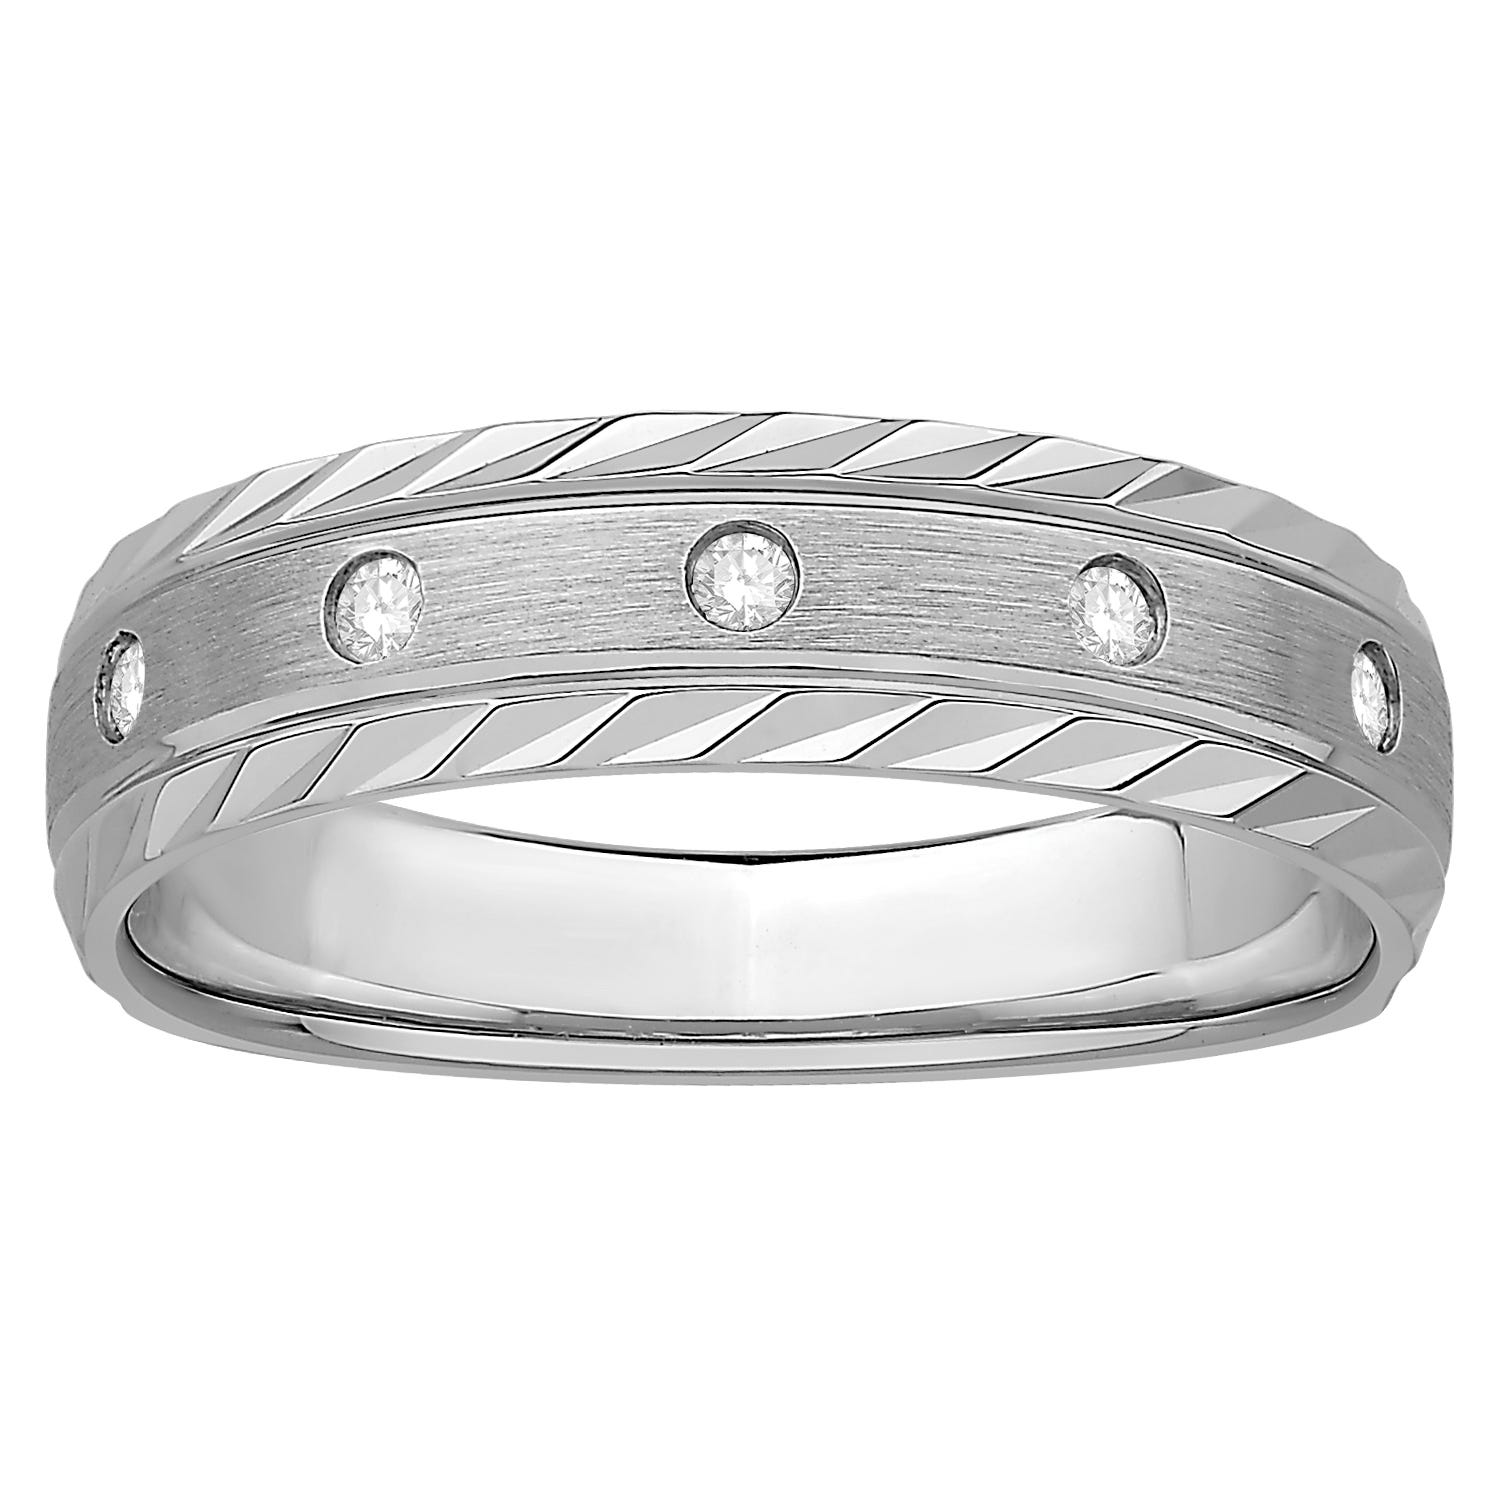 Drill-Set Round-Cut Diamond Gents Ring in 10kt White Gold